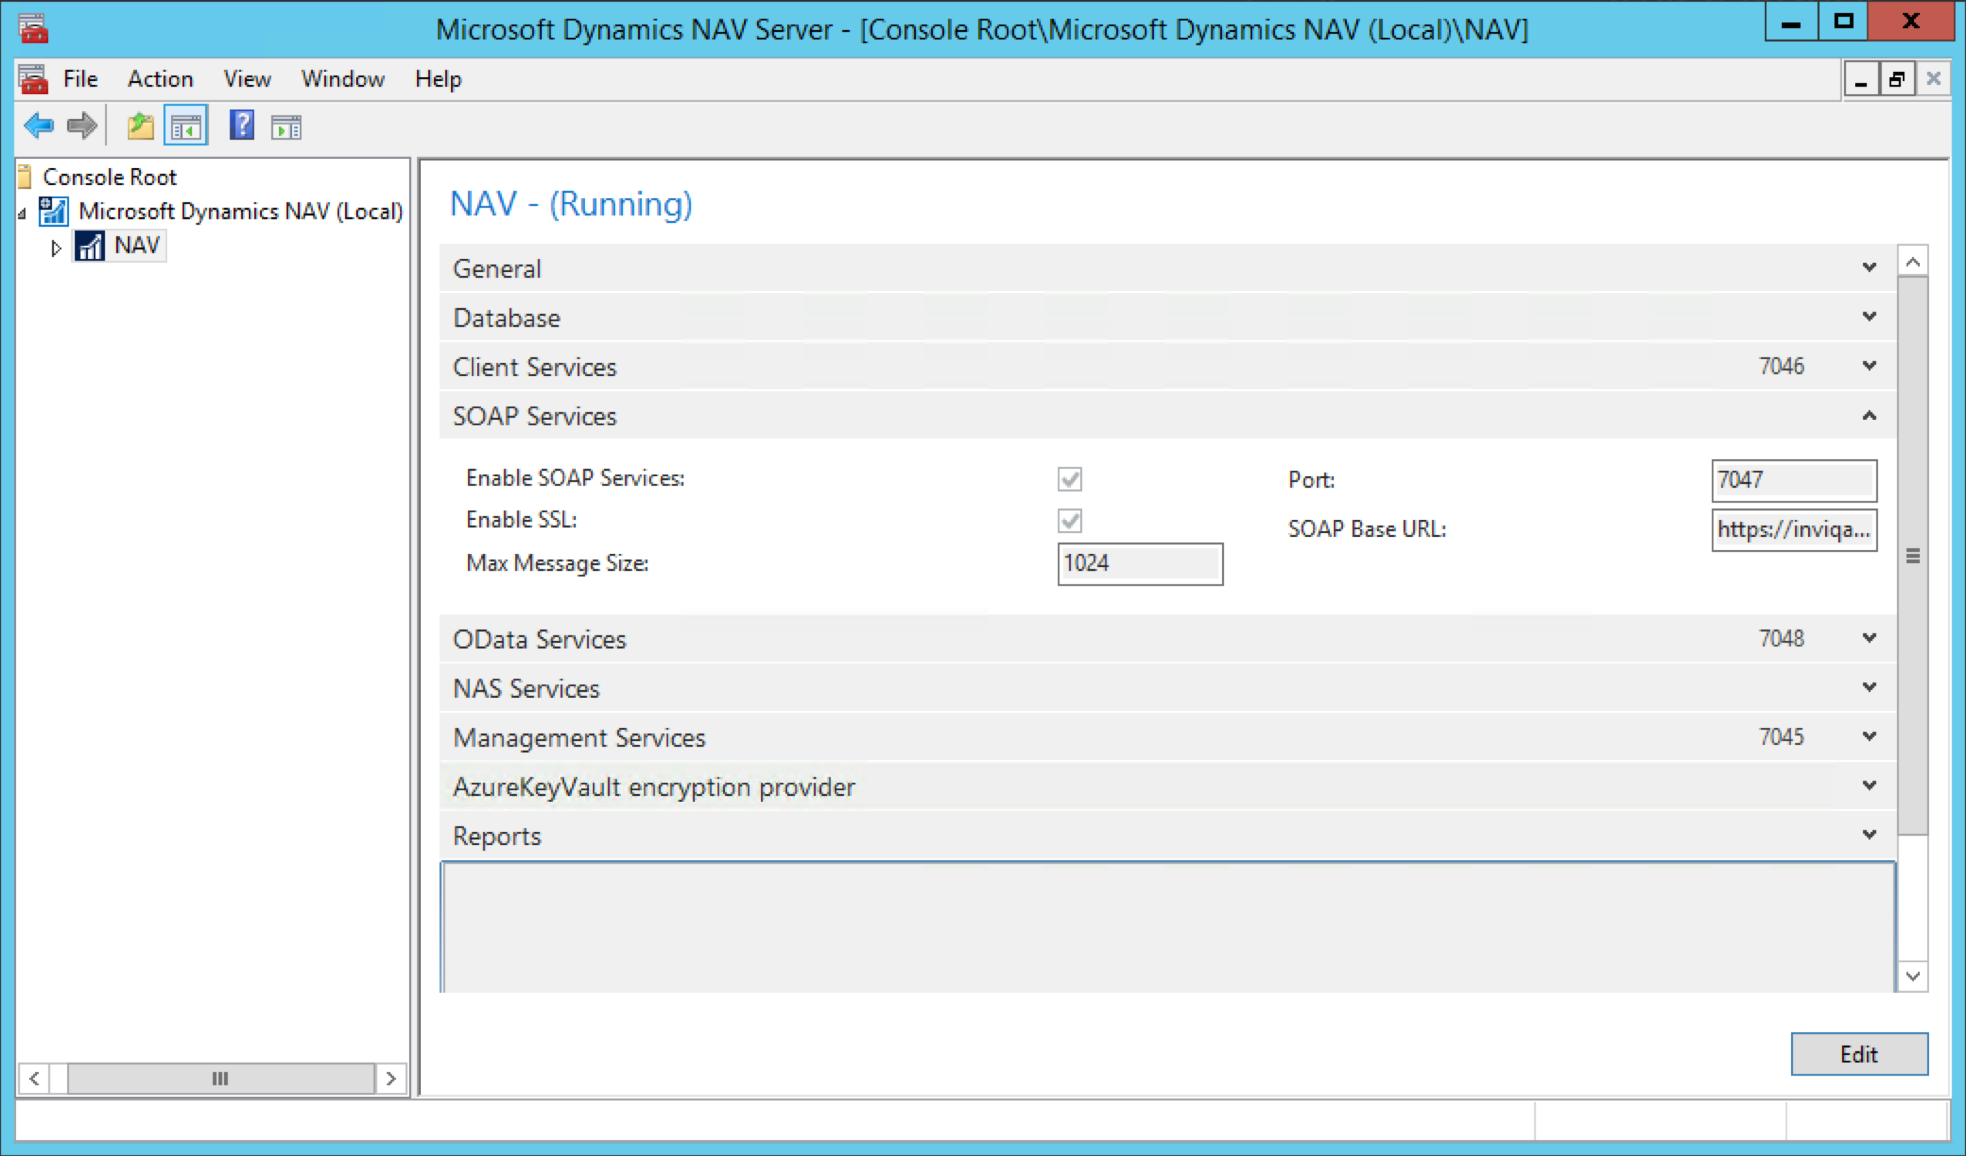 Dynamics NAV server with SOAP Services enabled